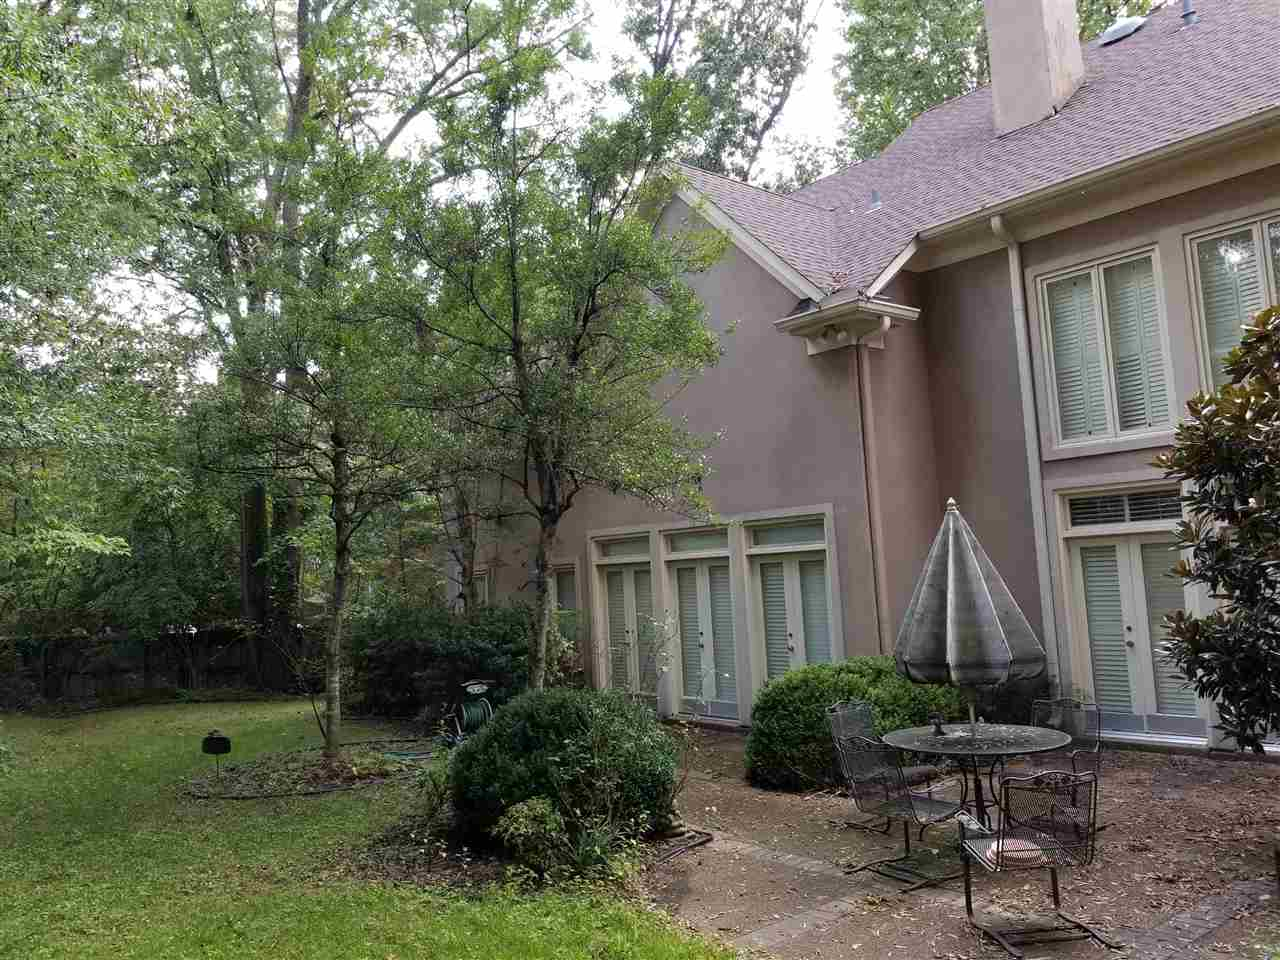 6745 N Kirby Oaks Memphis, TN 38119 - MLS #: 10011492